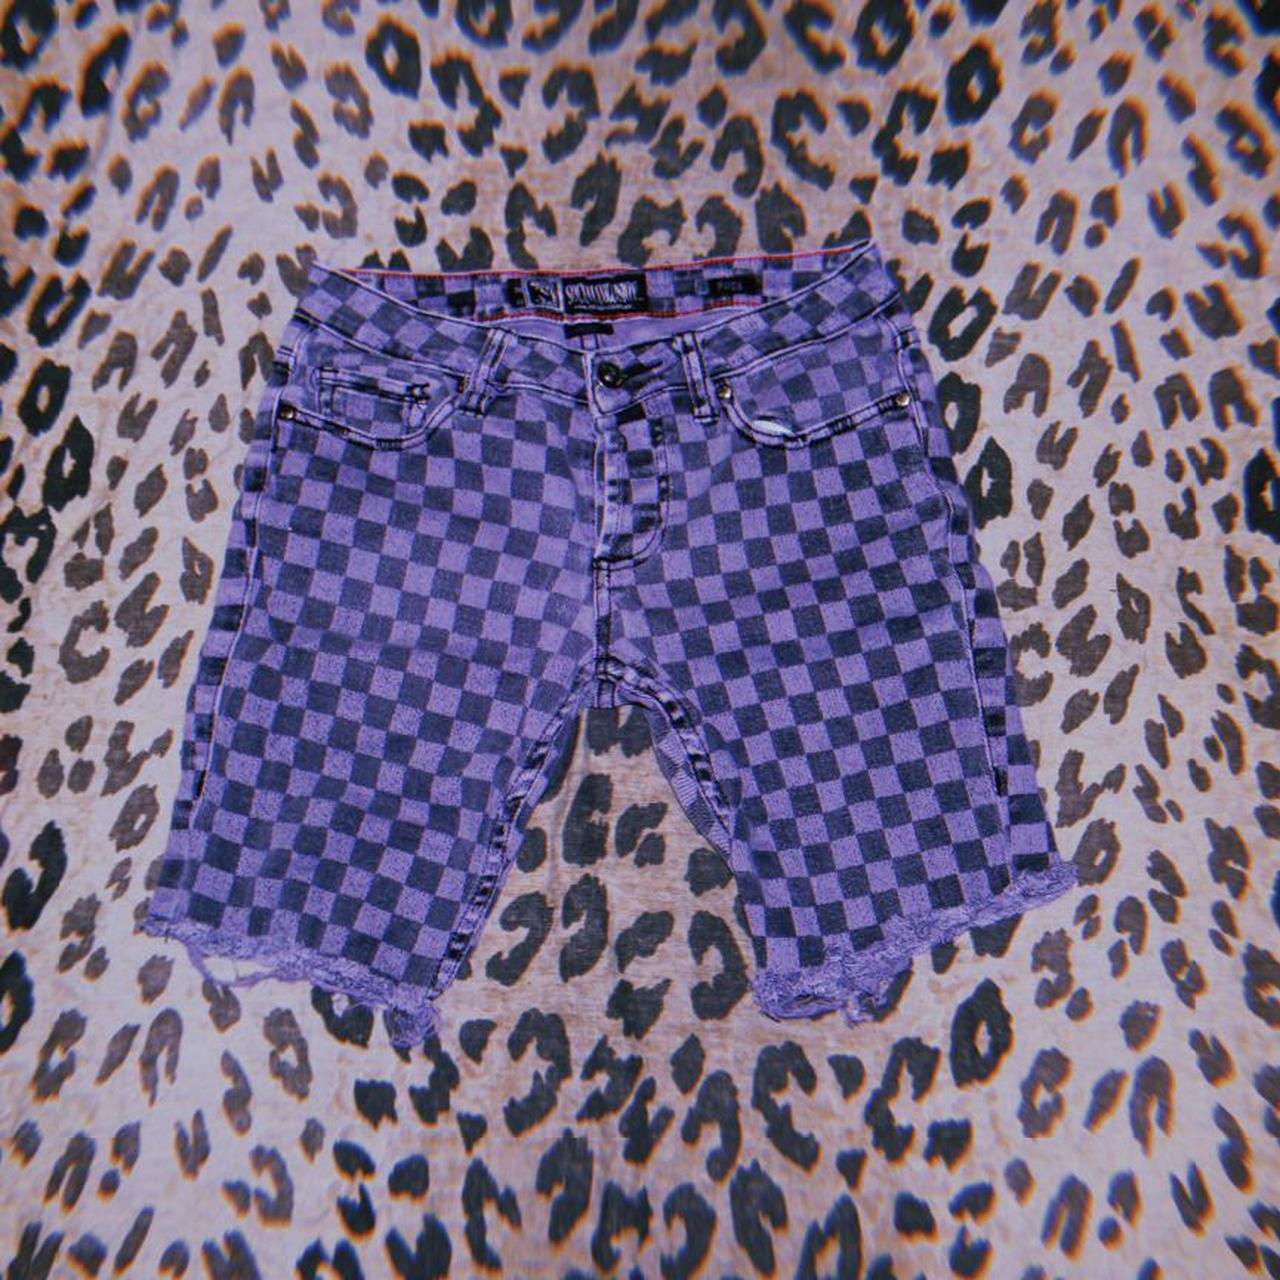 Product Image 1 - Purple checkerboard cutoff jean shorts. These